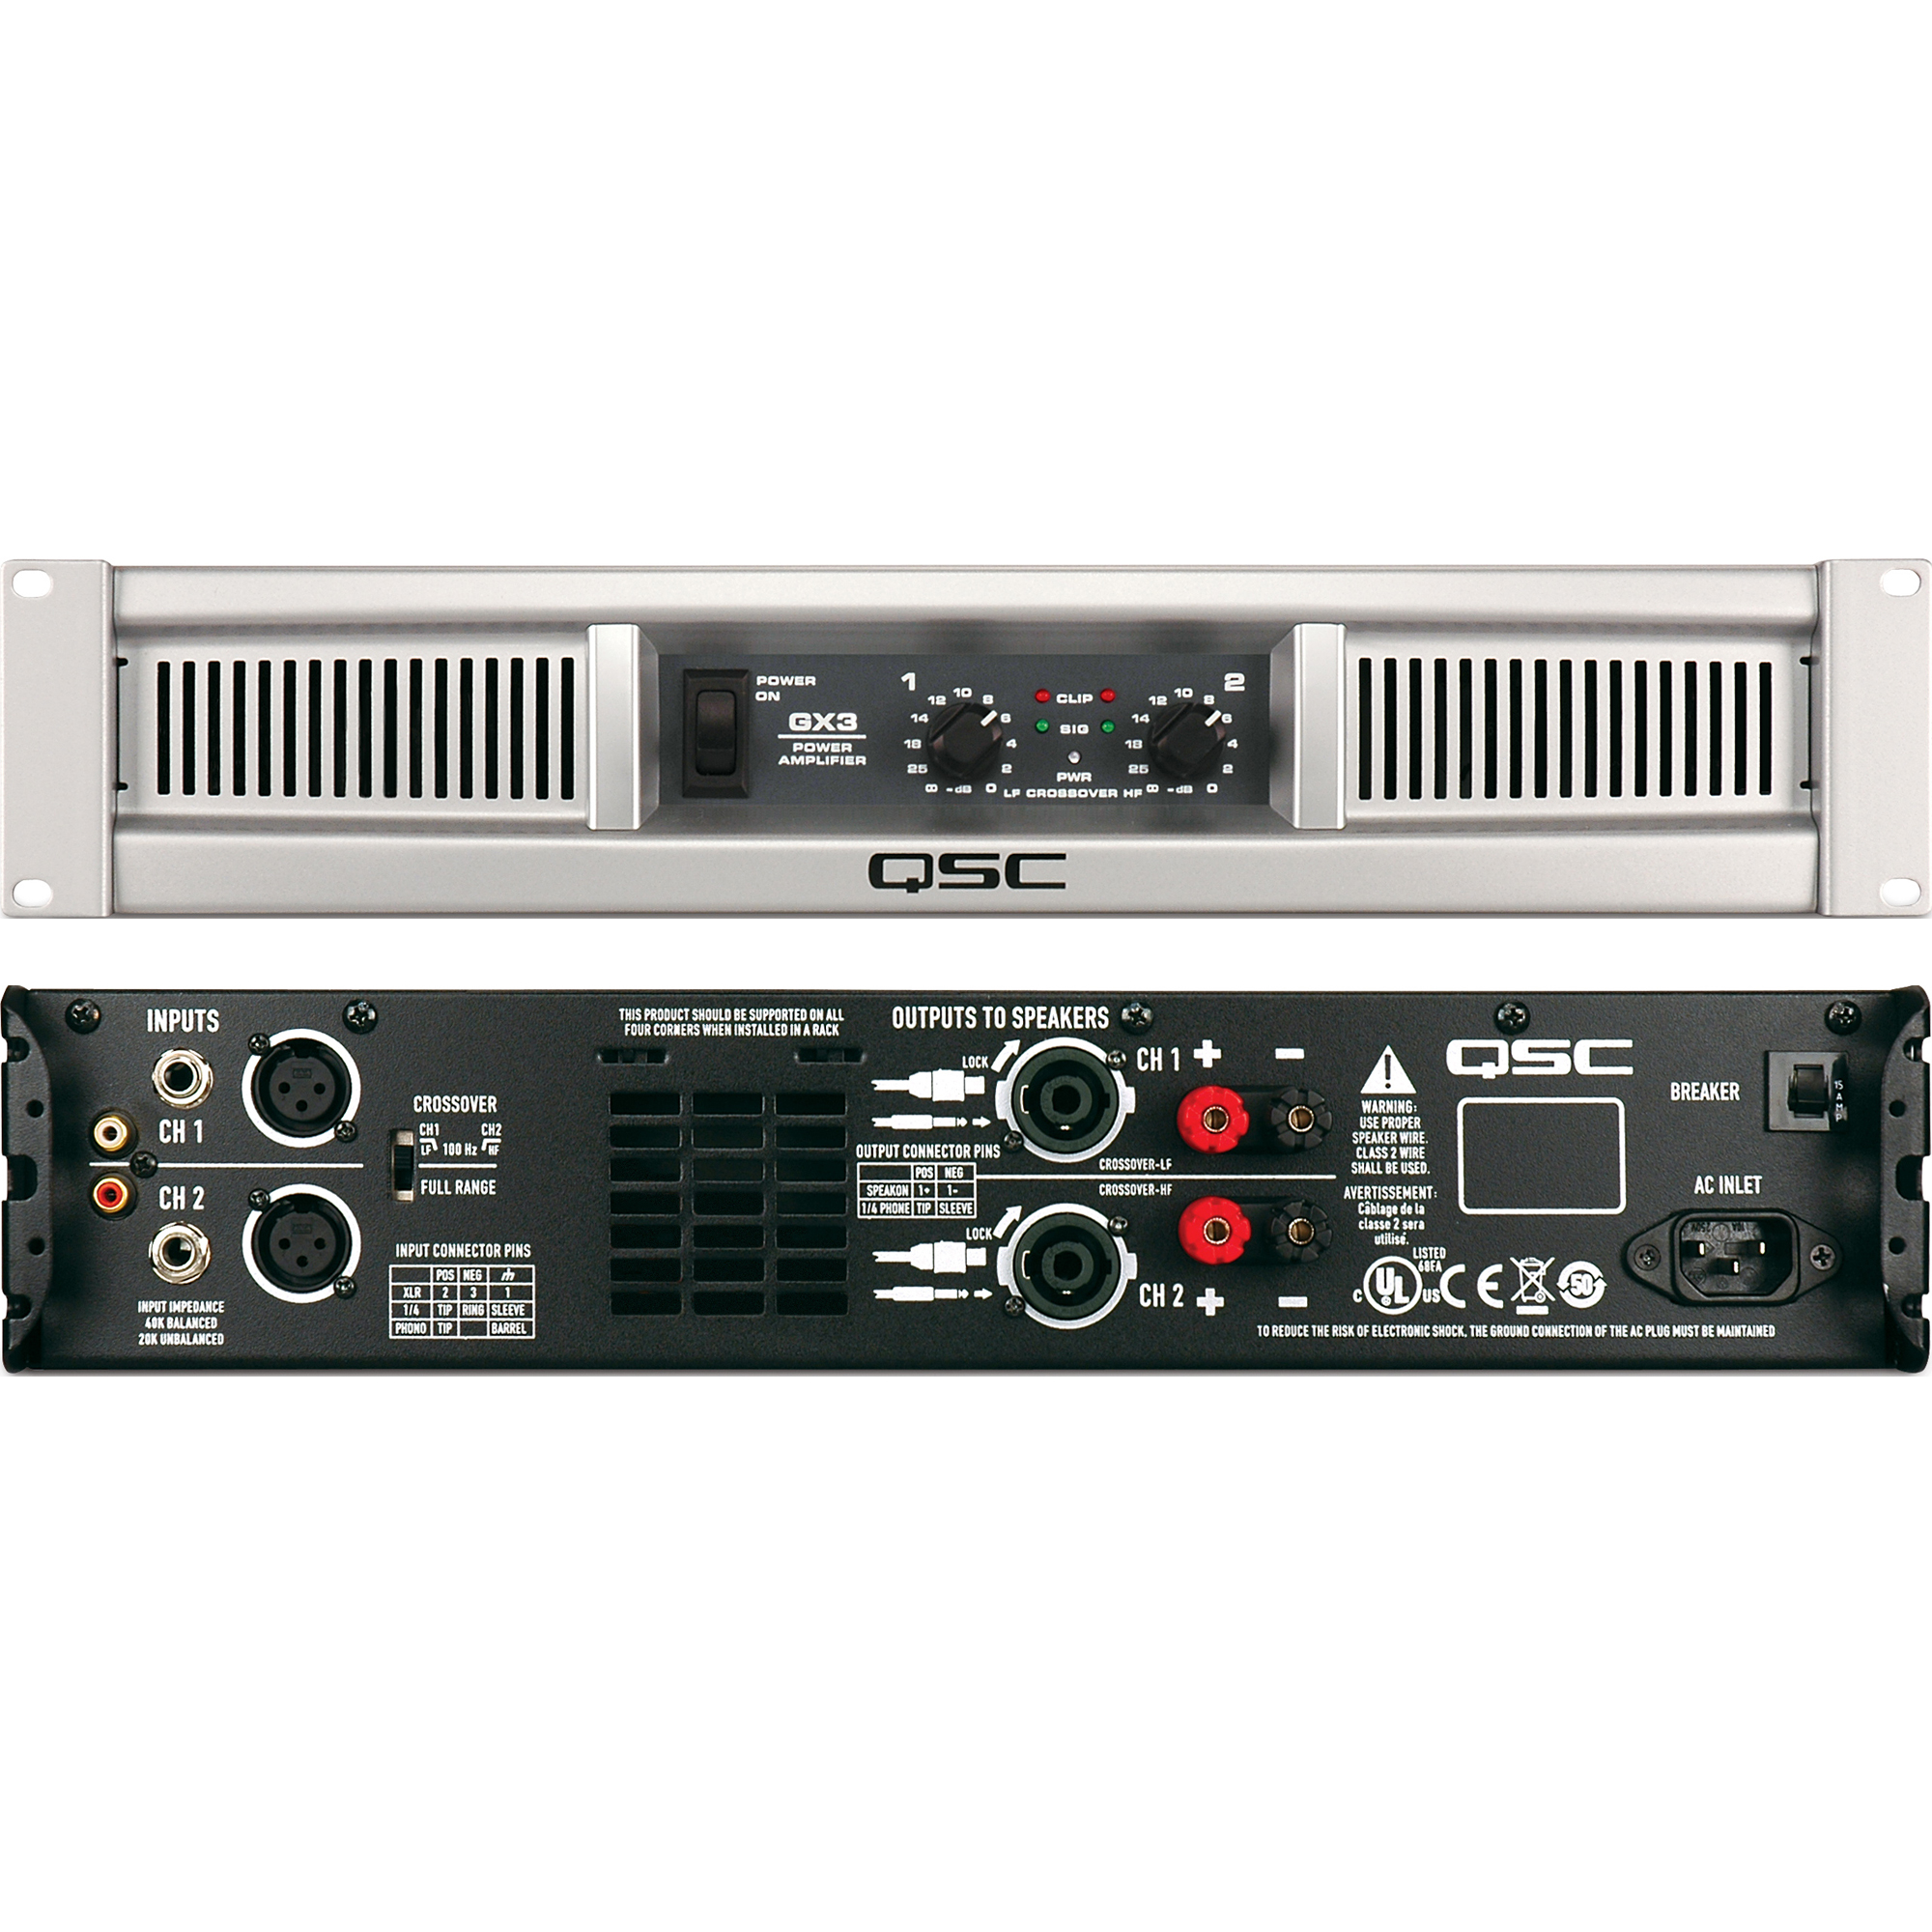 Welcome To Fplogistics Qsc Power Amplifiers Gx3 500w Amplifier